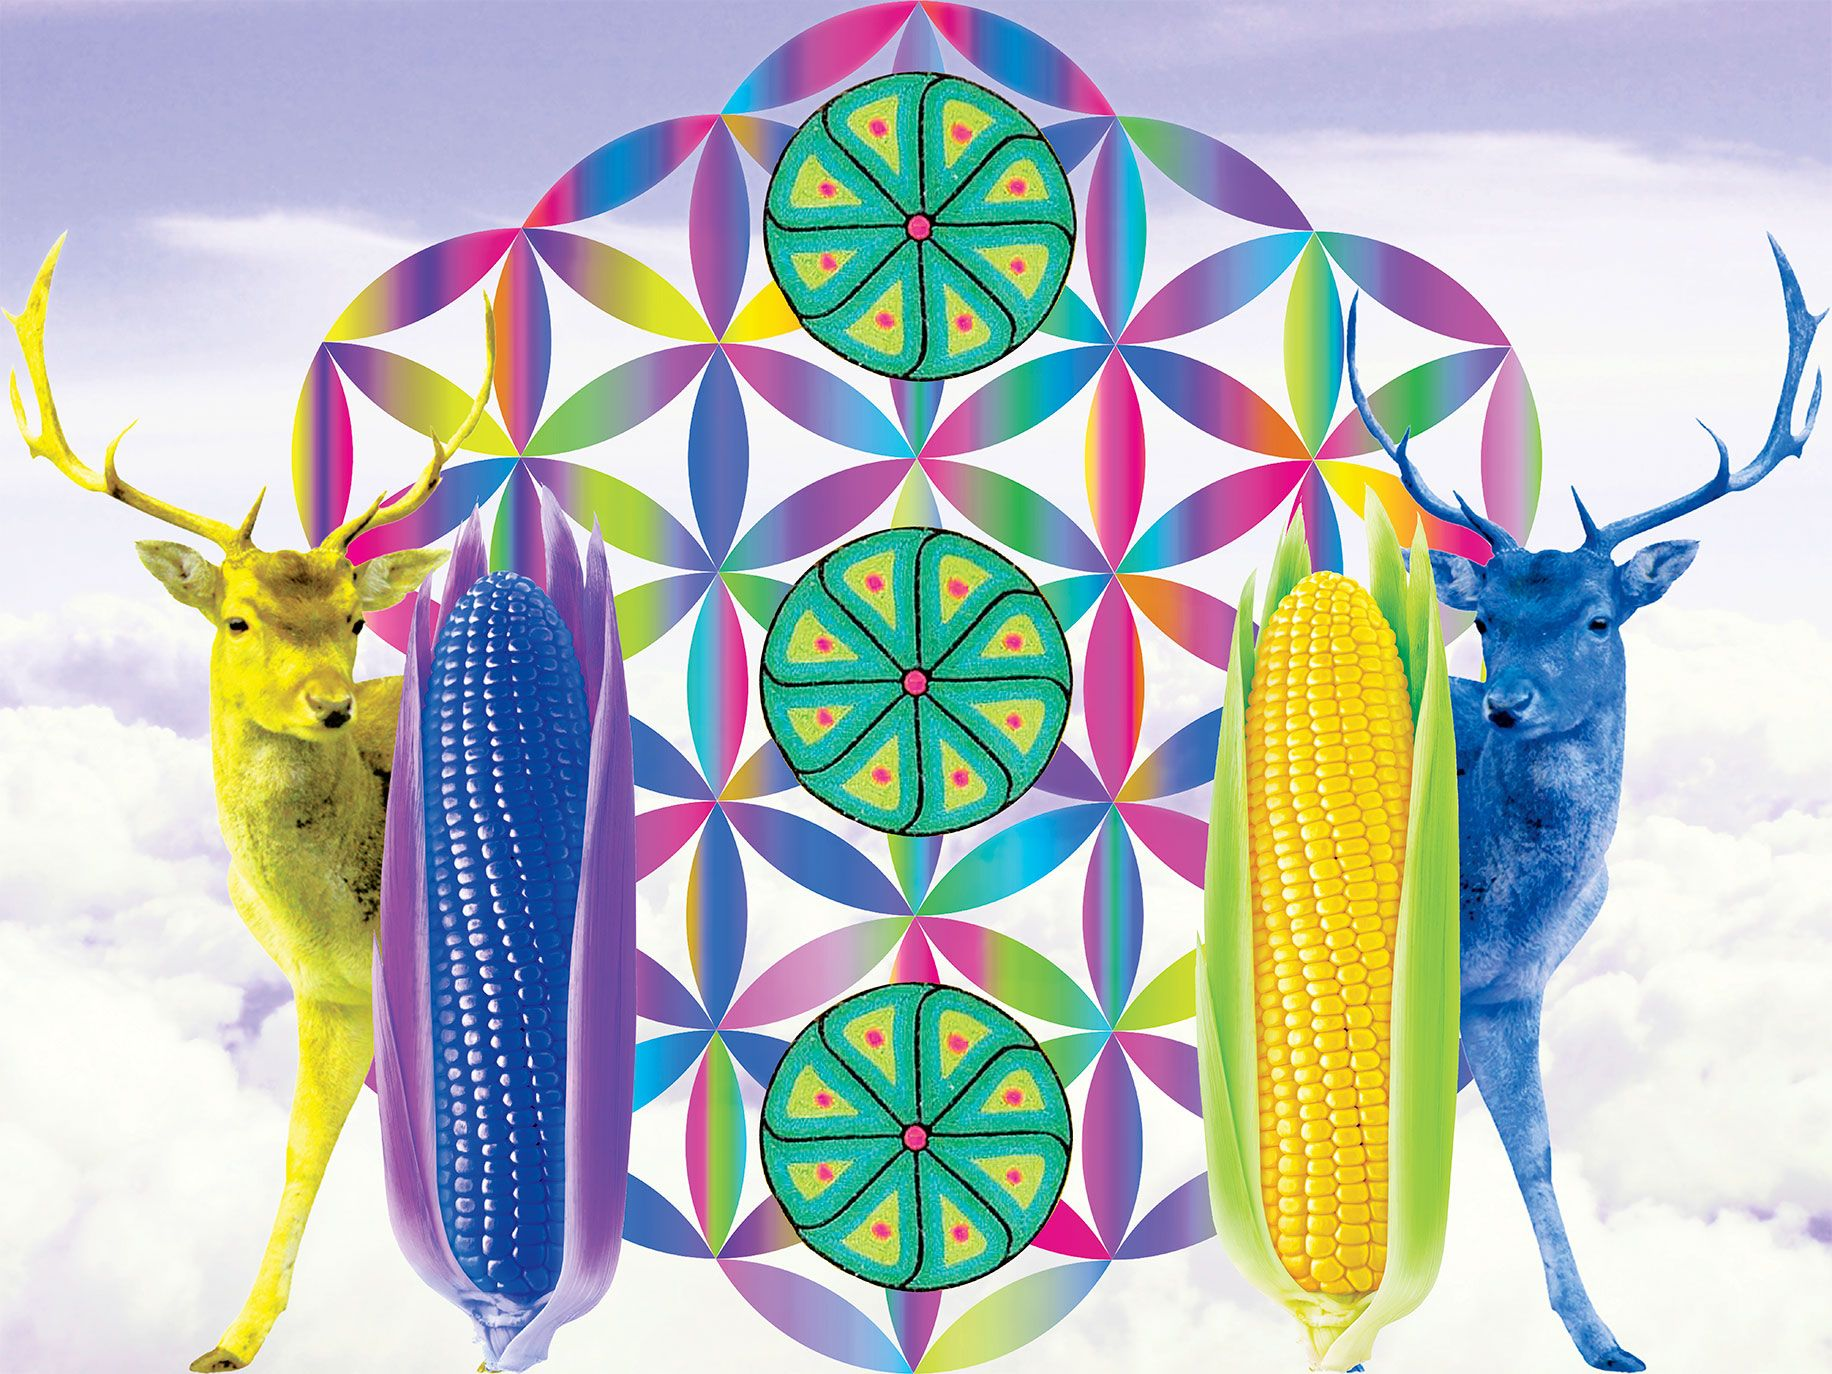 The corn and deer in North (Our Sacred Ancestors) represent Edgar Fabián Frías's Wixárika heritage.